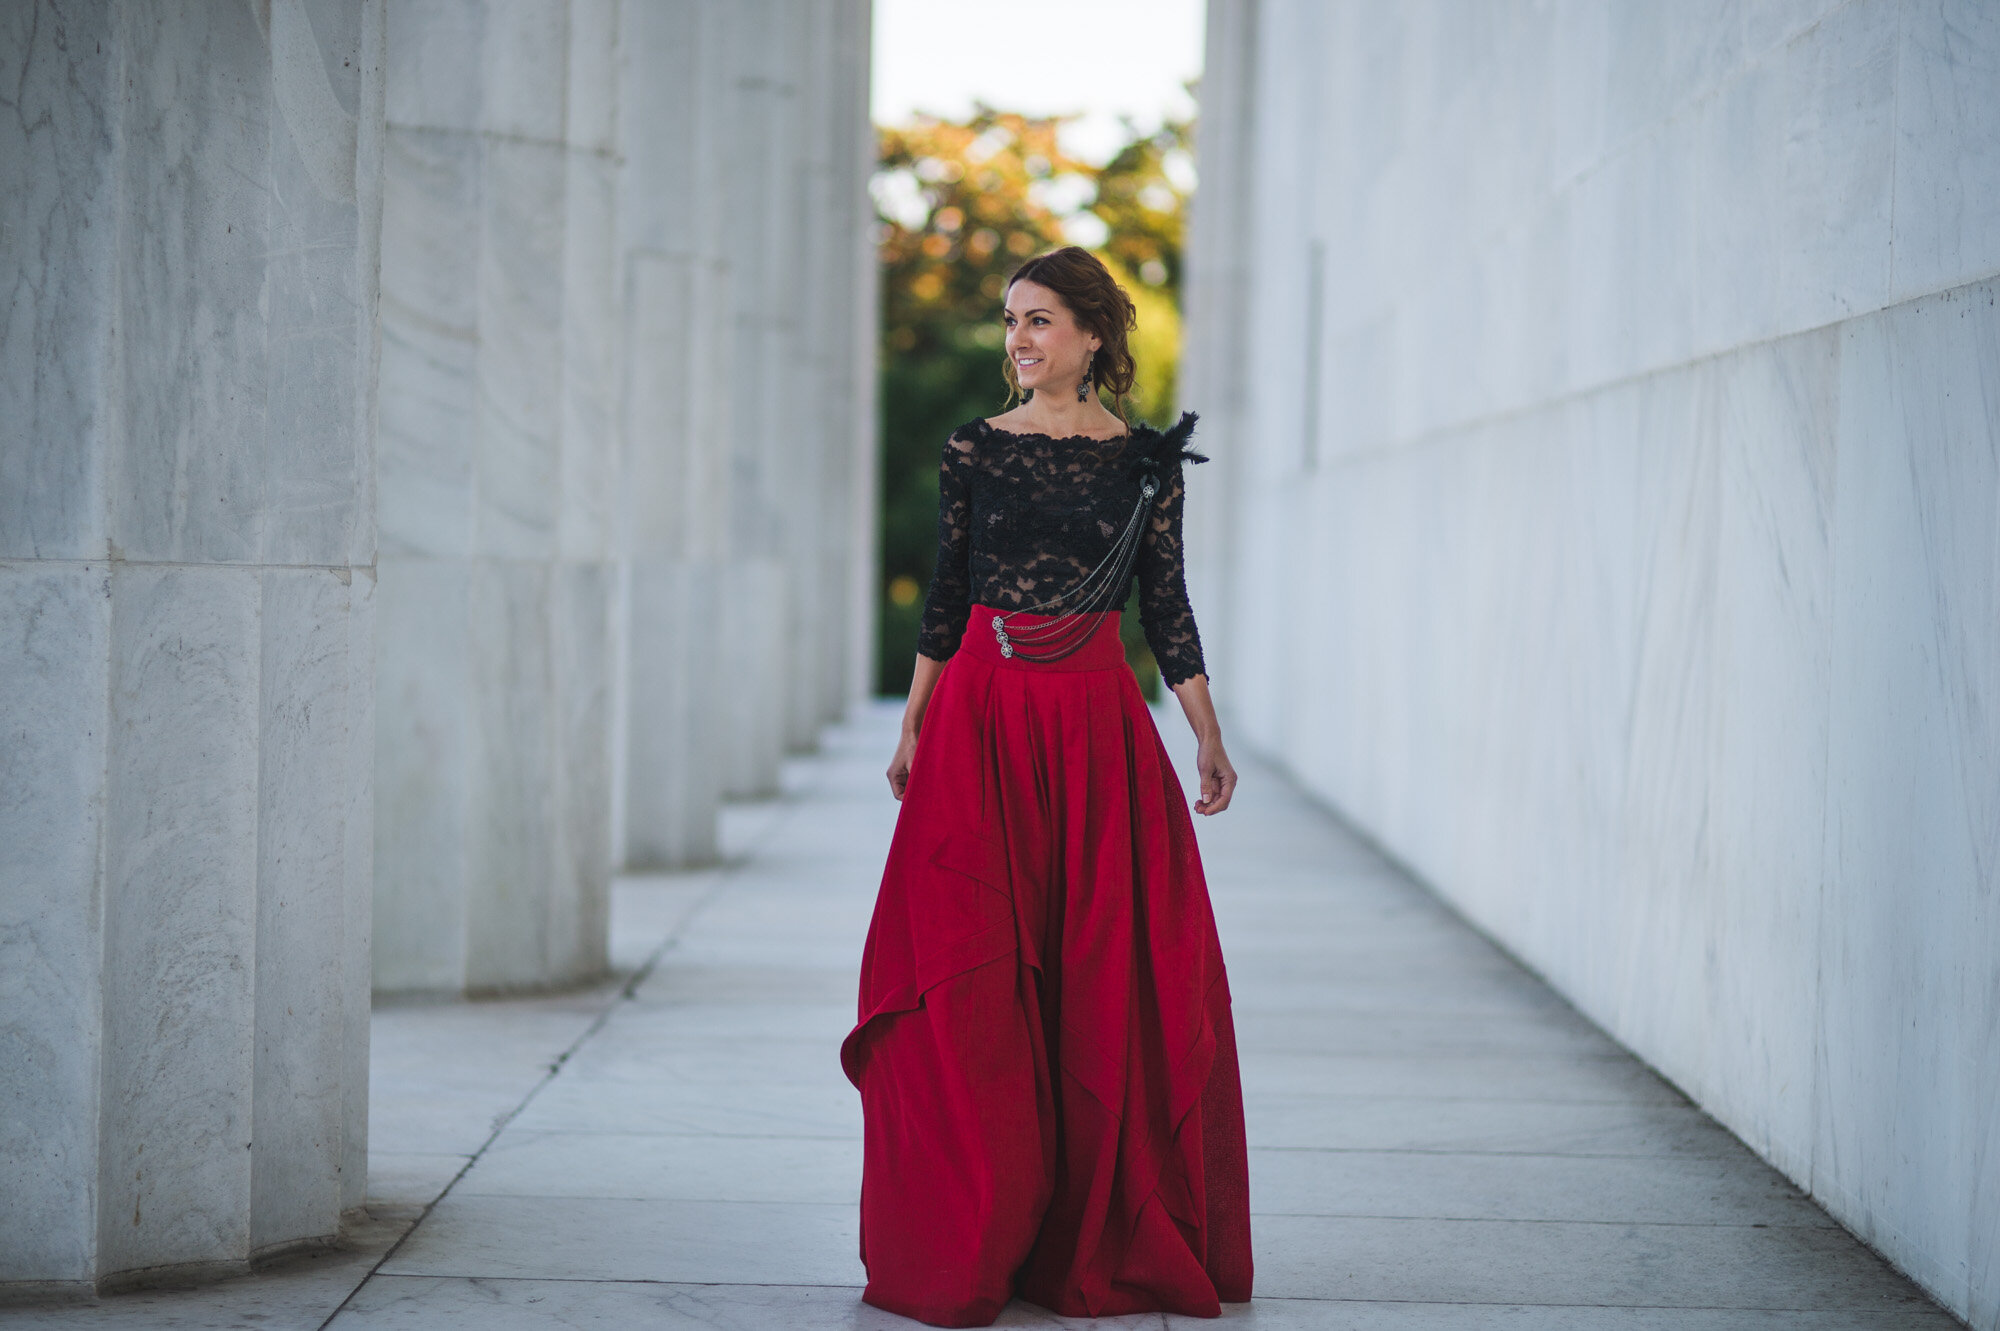 bespoke couture two piece ball gown at Washington Monument designed by Lana Gerimovich with Alis Fashion Design in photographed by Montas Photography.jpg